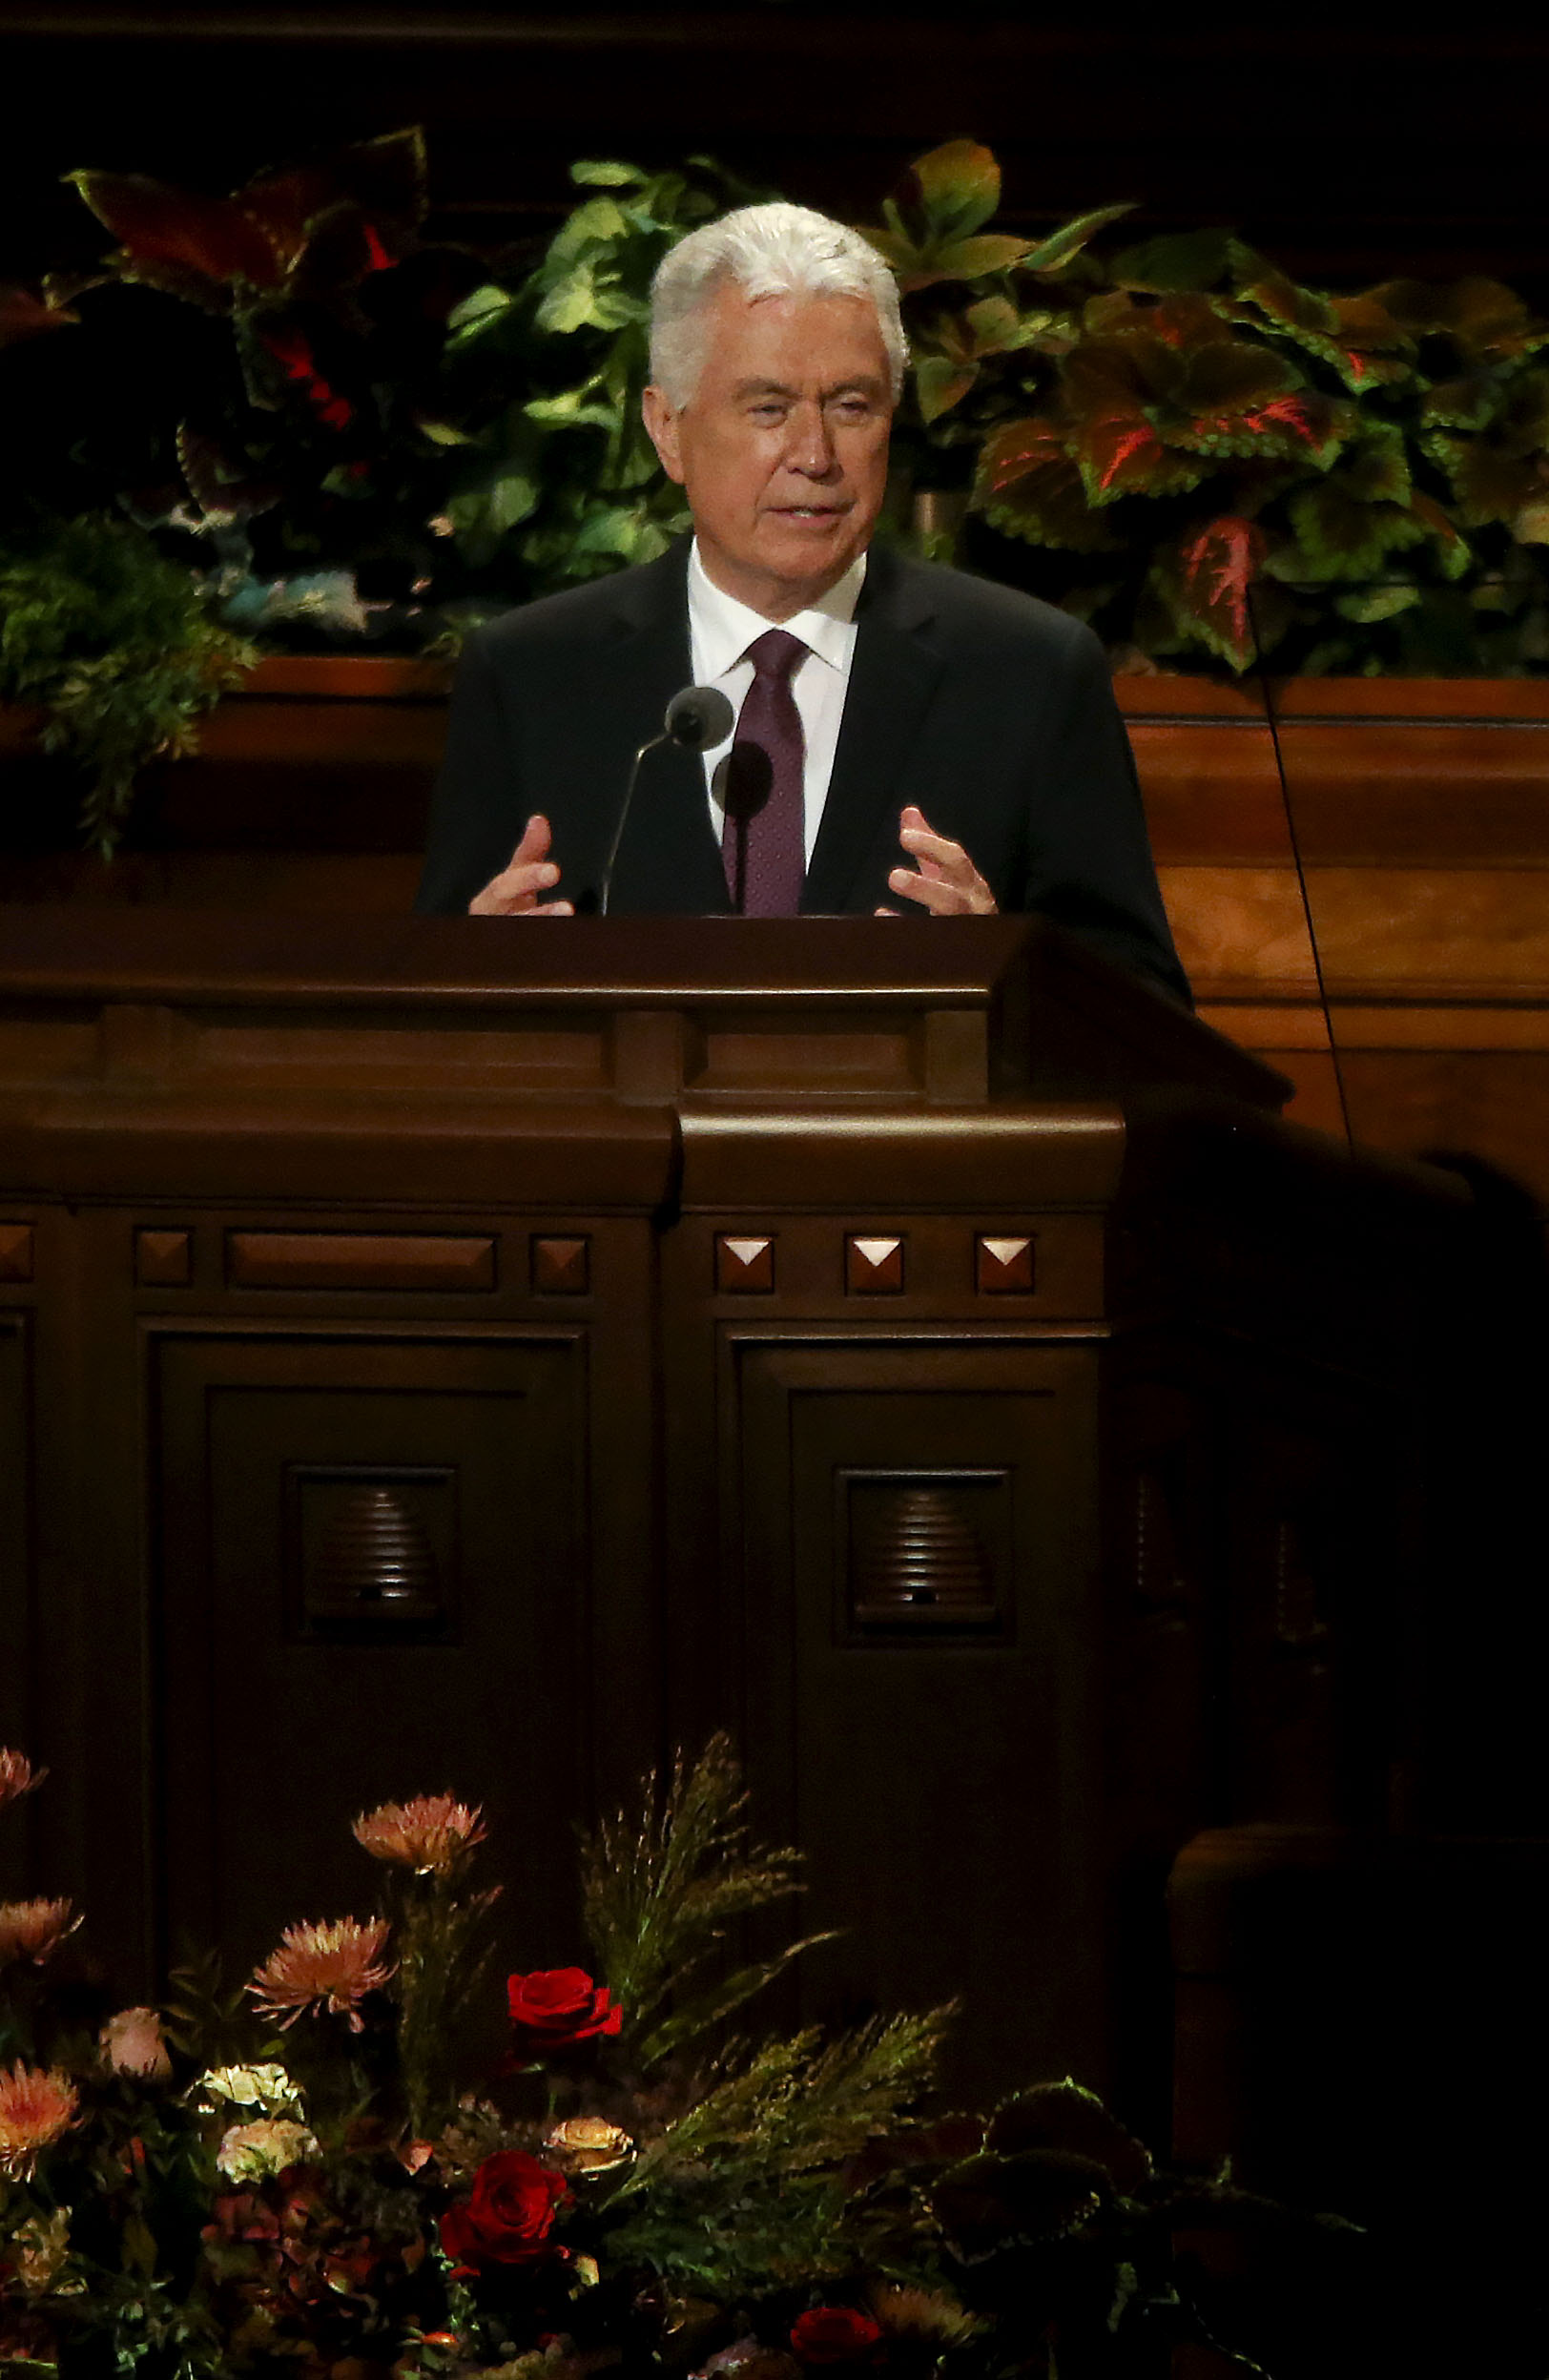 Elder Dieter F. Uchtdorf of the Quorum of the Twelve Apostles speaks during the Sunday morning session of the 189th Semiannual General Conference of The Church of Jesus Christ of Latter-day Saints in the Conference Center in Salt Lake City on Sunday, Oct. 6, 2019.